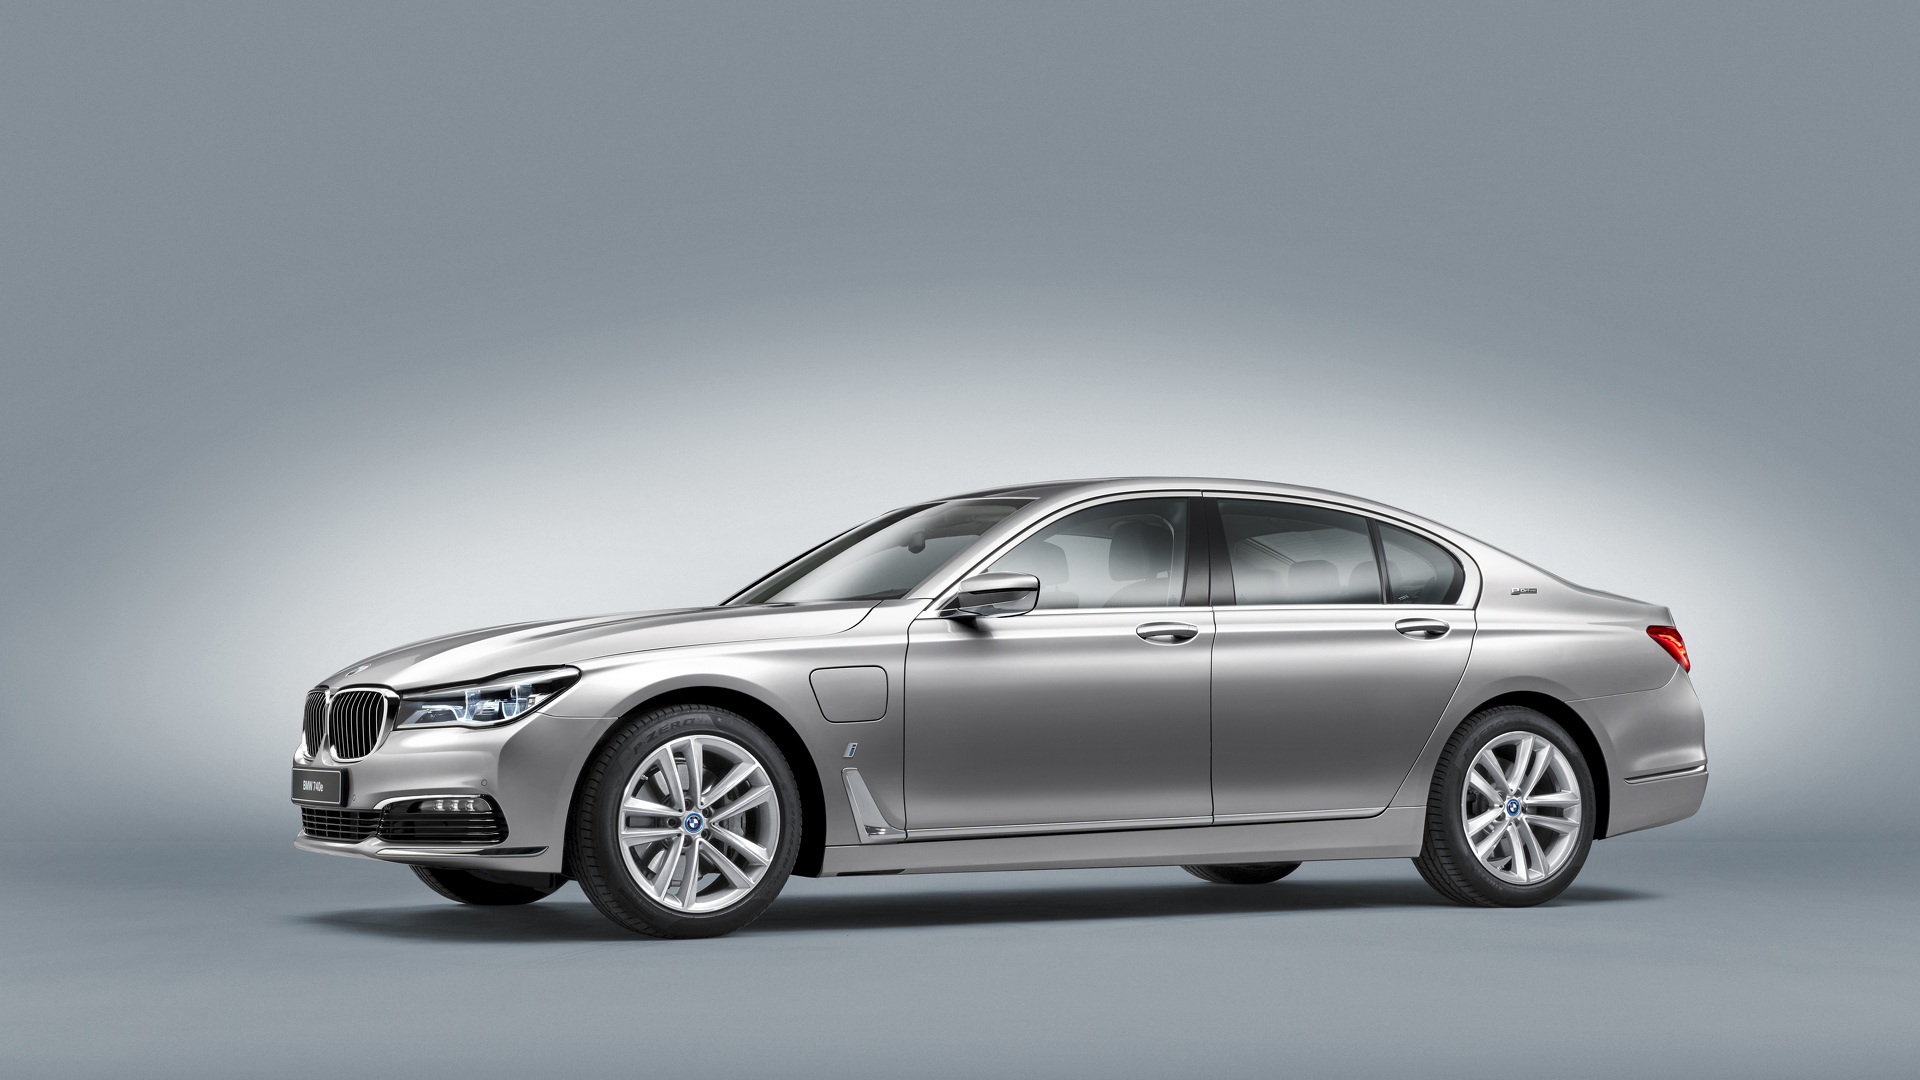 BMW 740e hybrid inaugurates iPerformance sub-brand